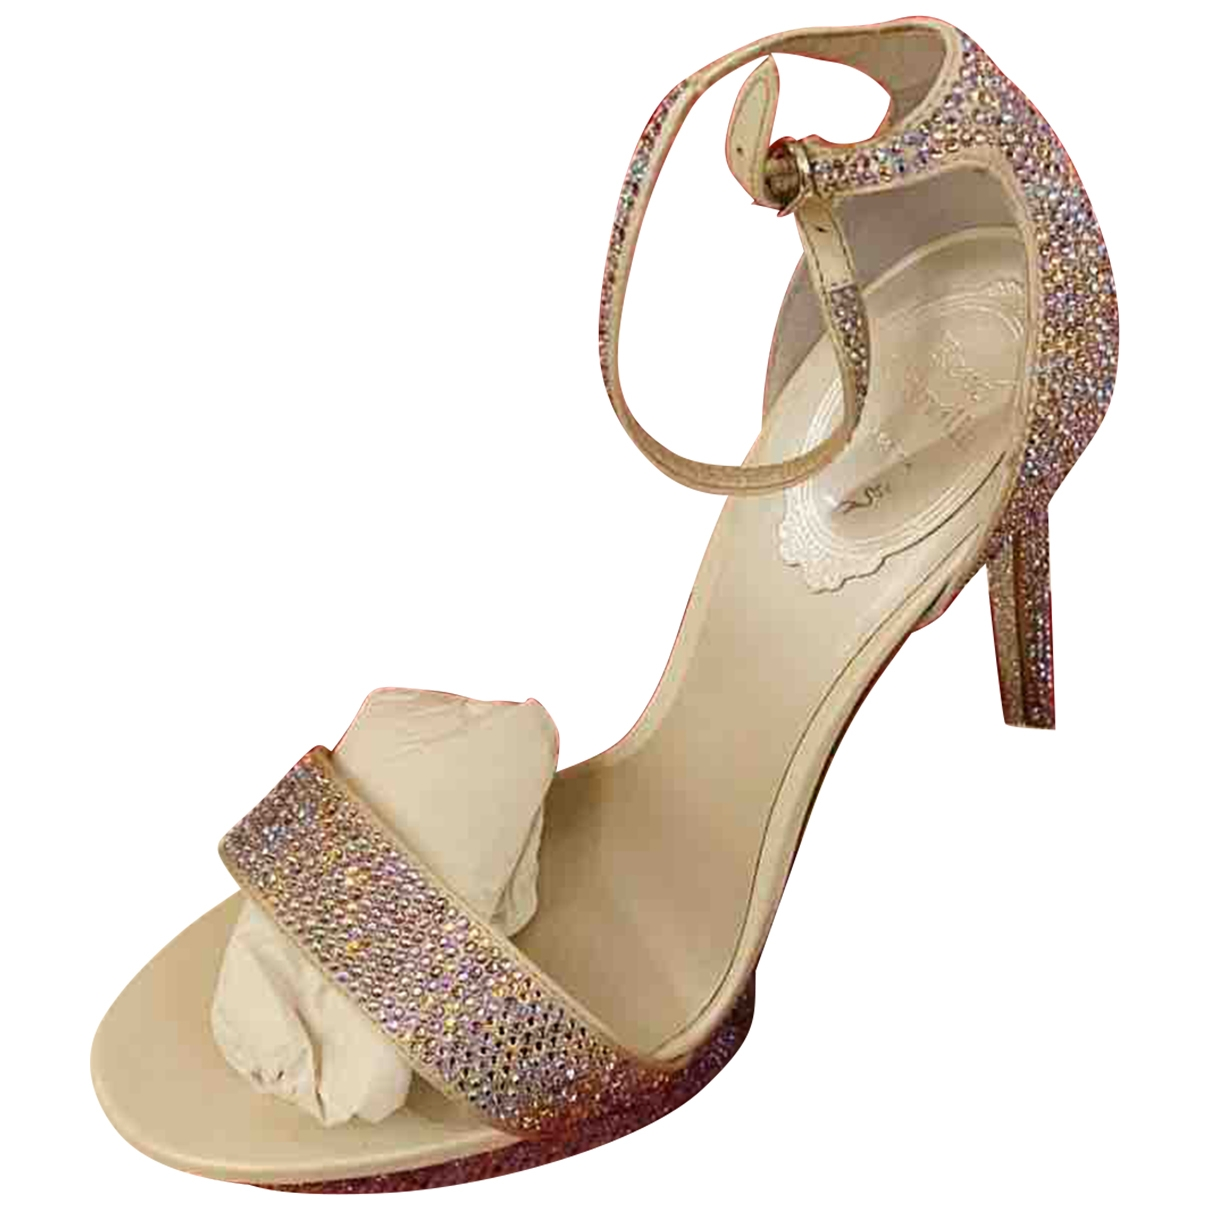 Rene Caovilla \N Silver Glitter Sandals for Women 37.5 EU